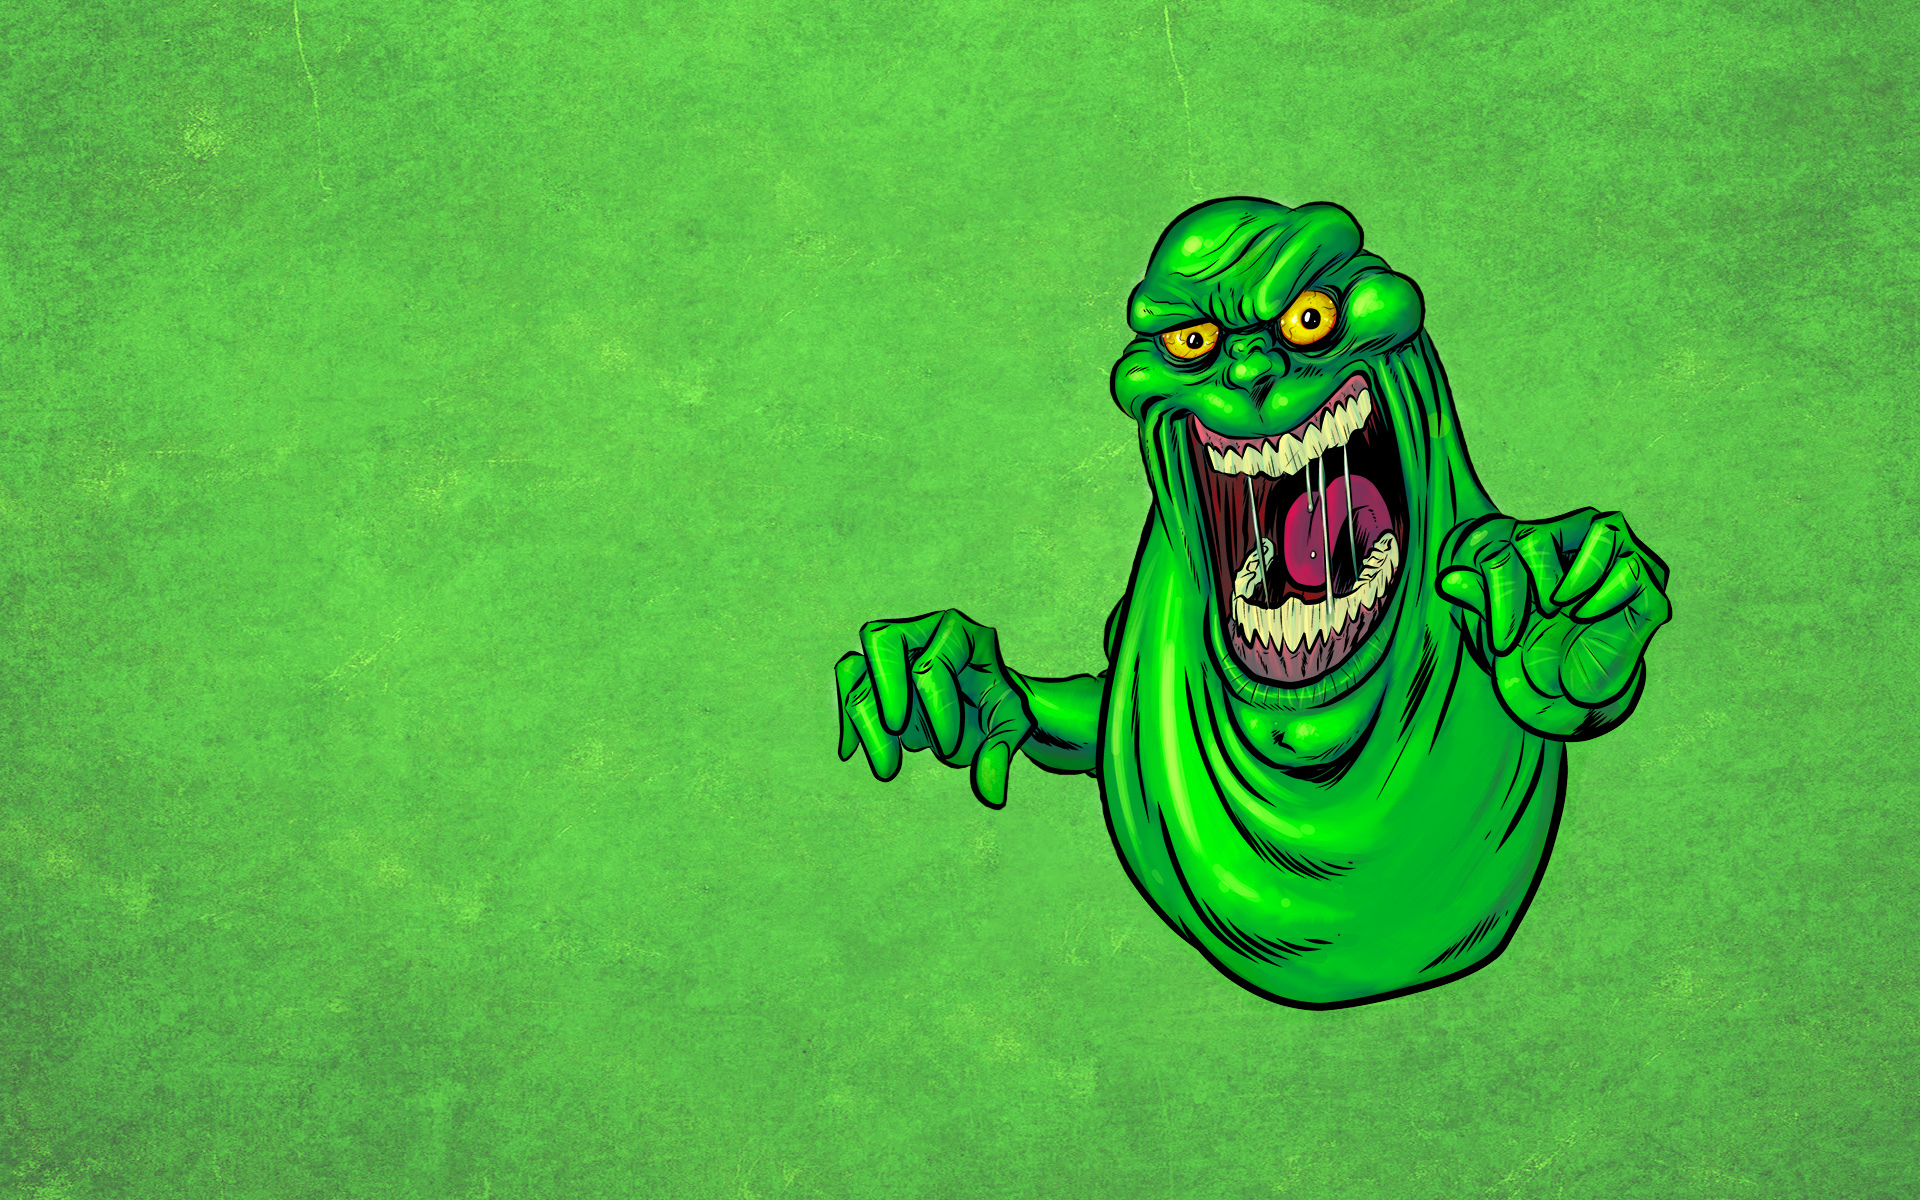 Ghostbusters GrГјner Geist